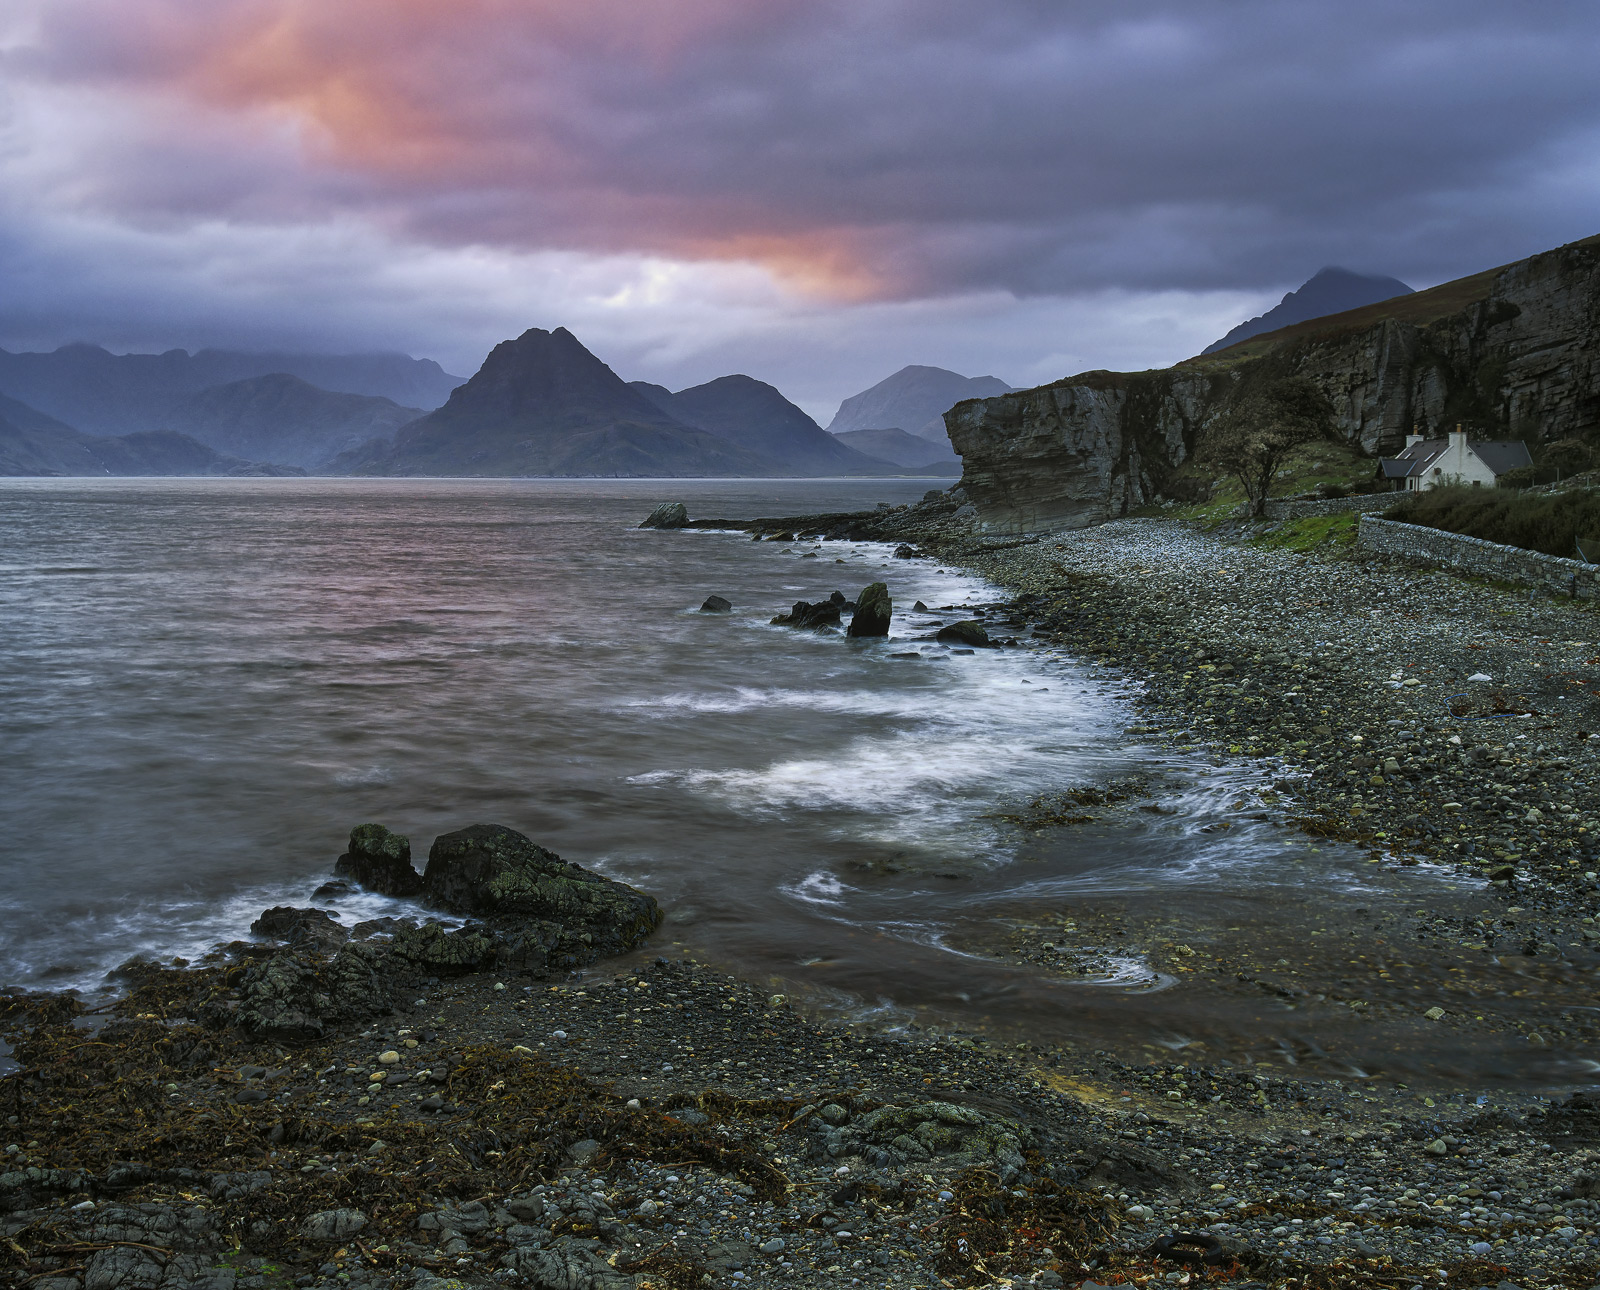 Twilight settles over Elgol and some of the higher clouds start to redden over the distant Cuillins.